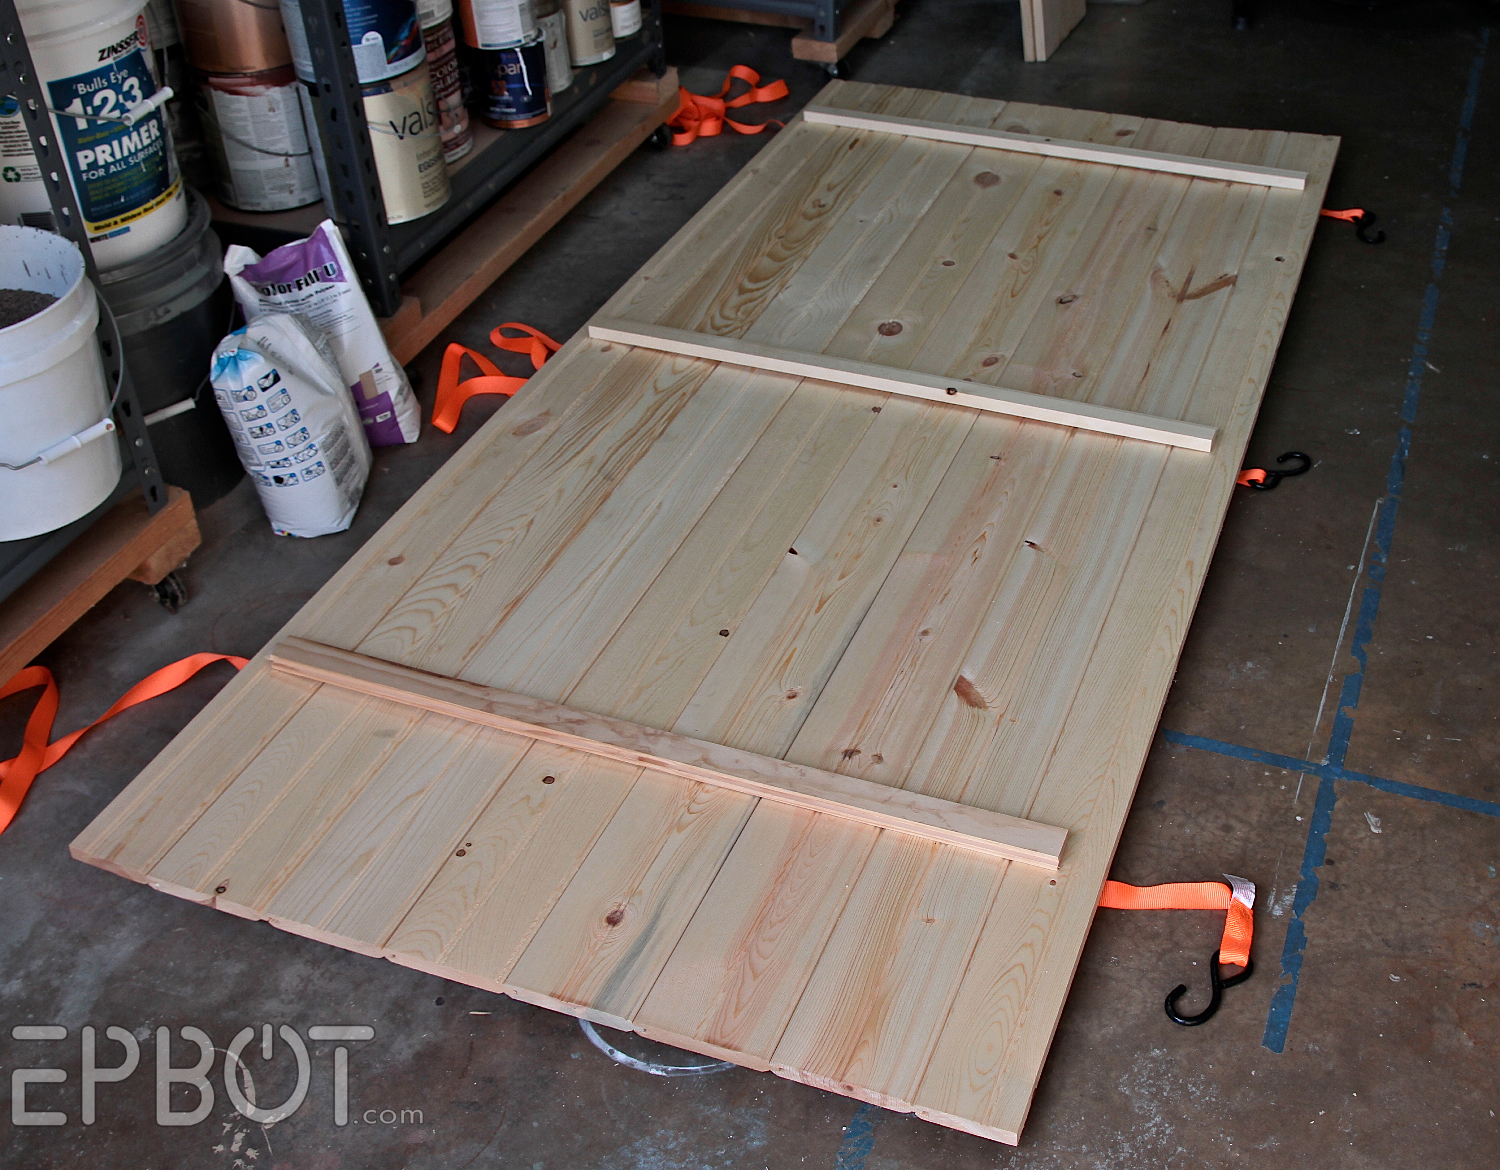 How To how to make a barn door images : EPBOT: Make Your Own Sliding Barn Door - For Cheap!